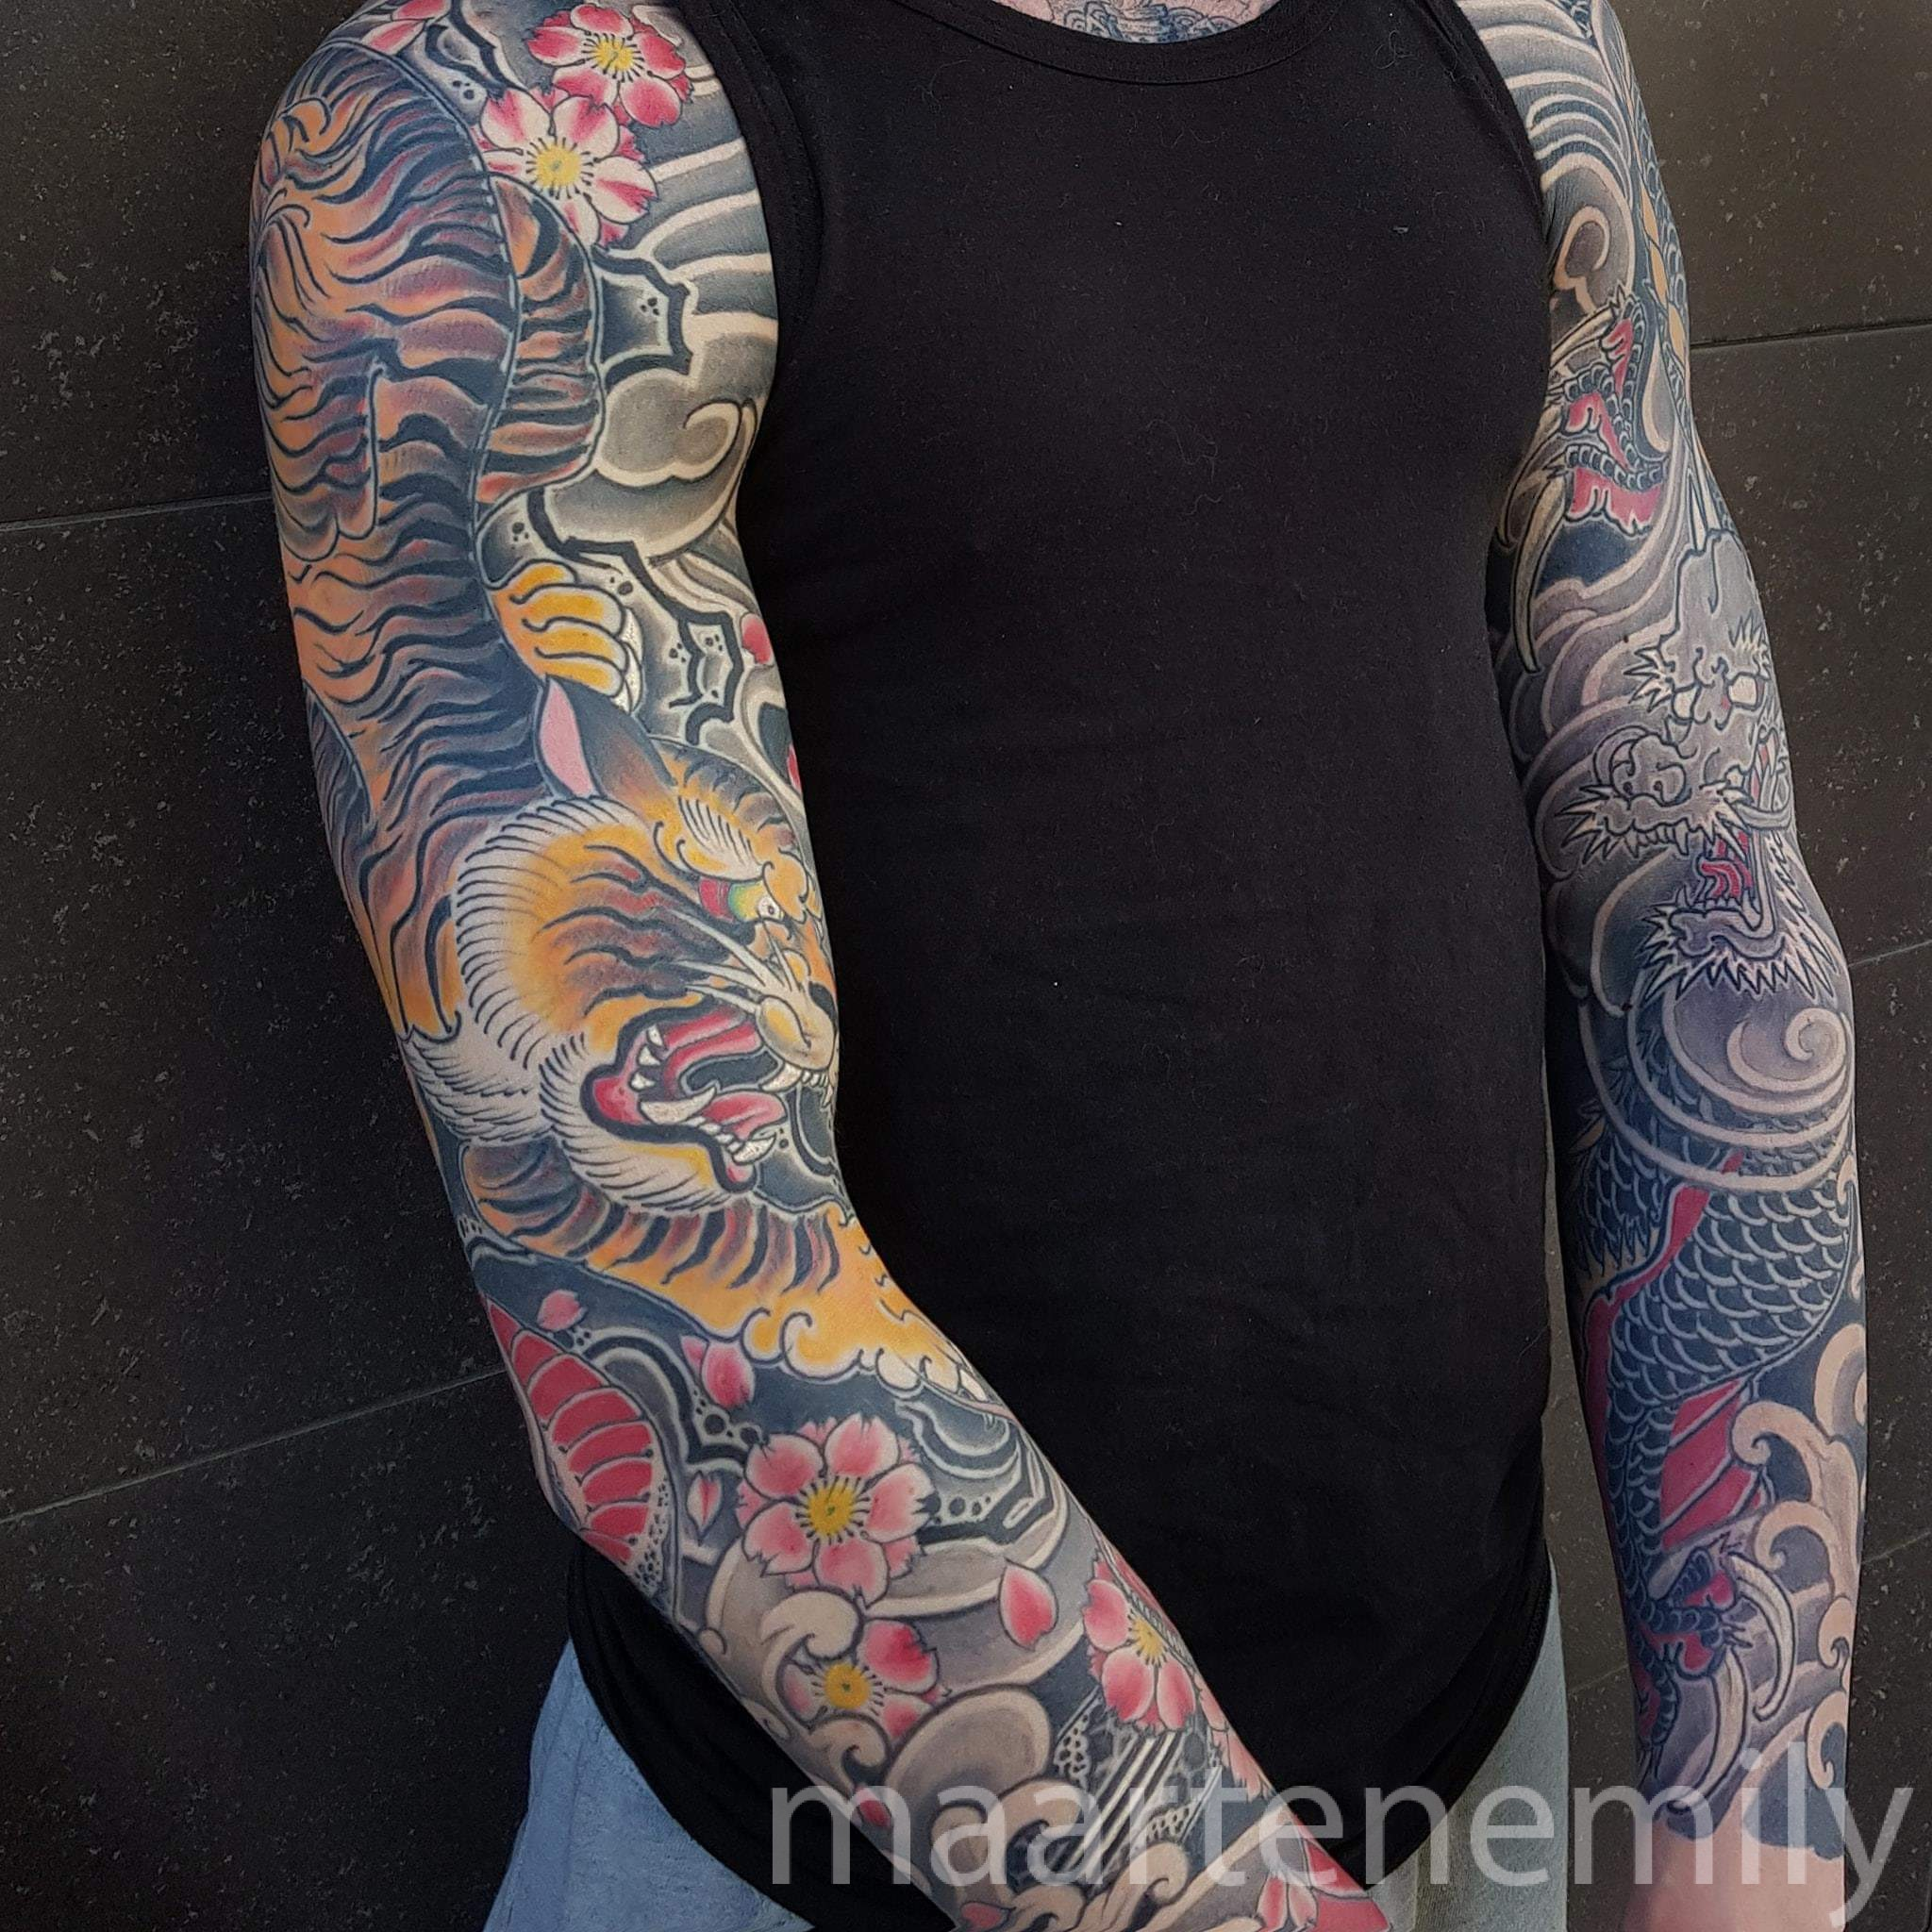 Japanese tattoosleeves designed by Maarten